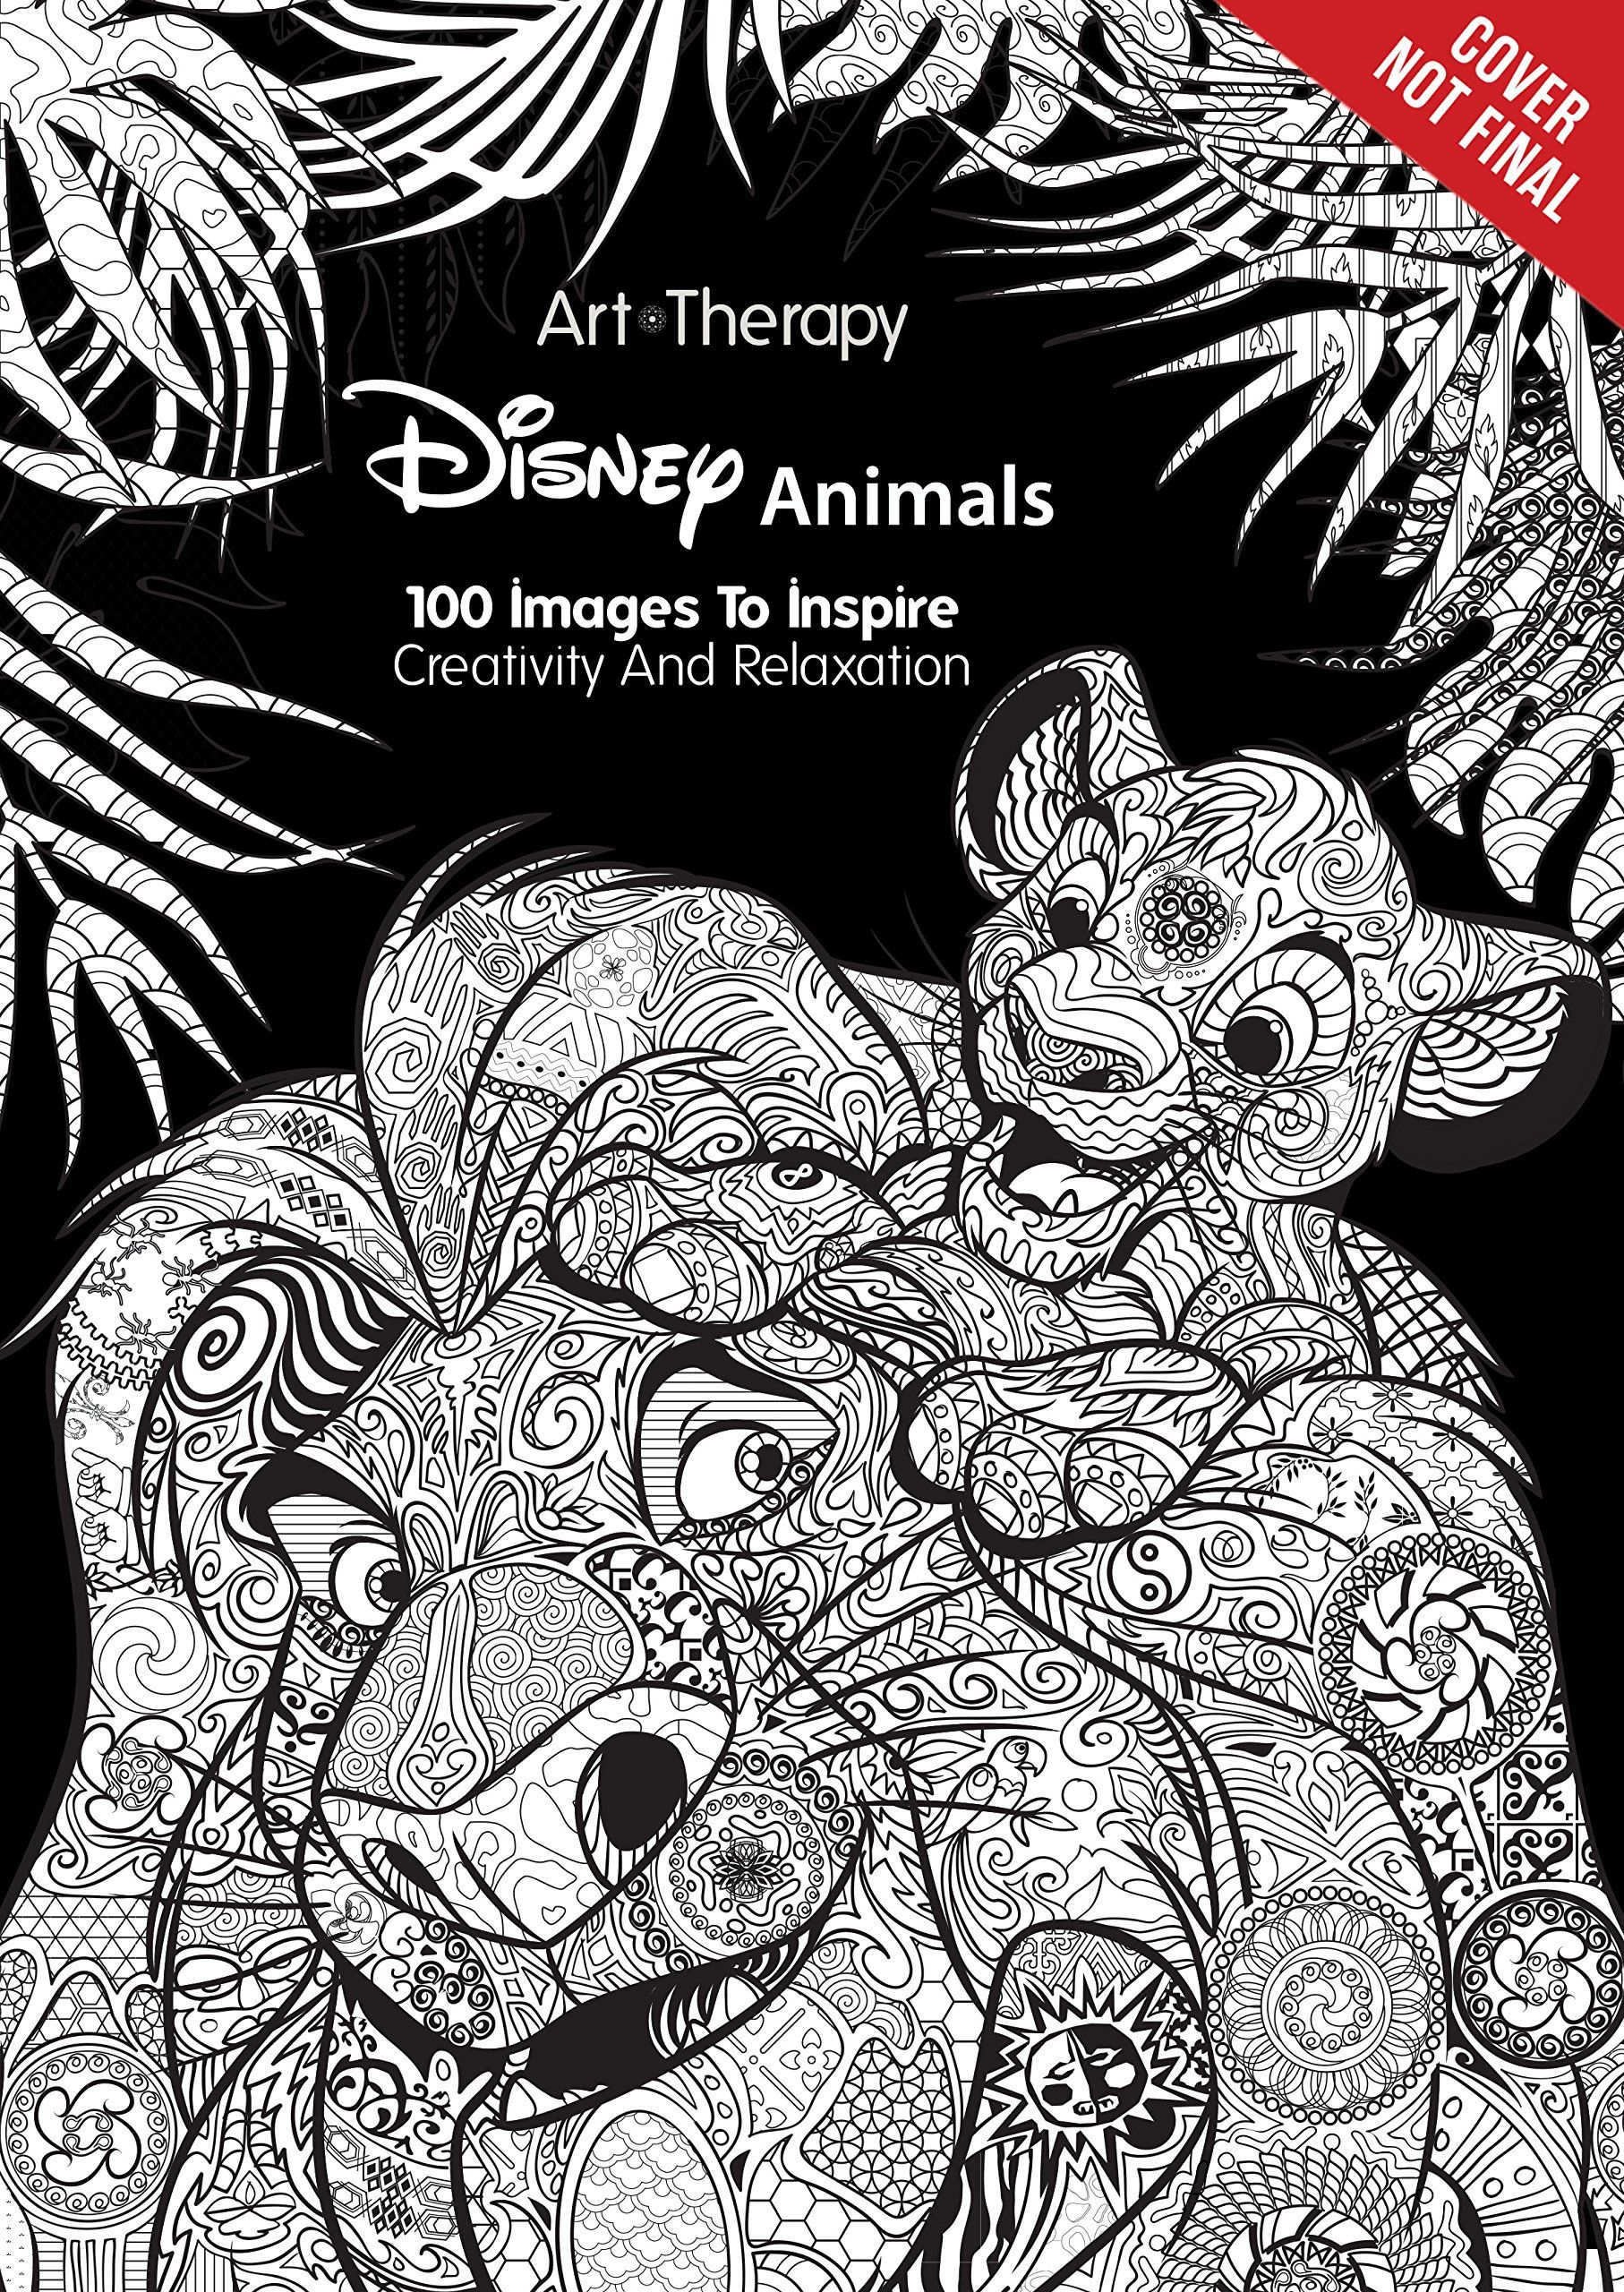 Disney coloring therapy - Disney Animals 100 Images To Inspire Creativity And Relaxation Art Therapy Catherine